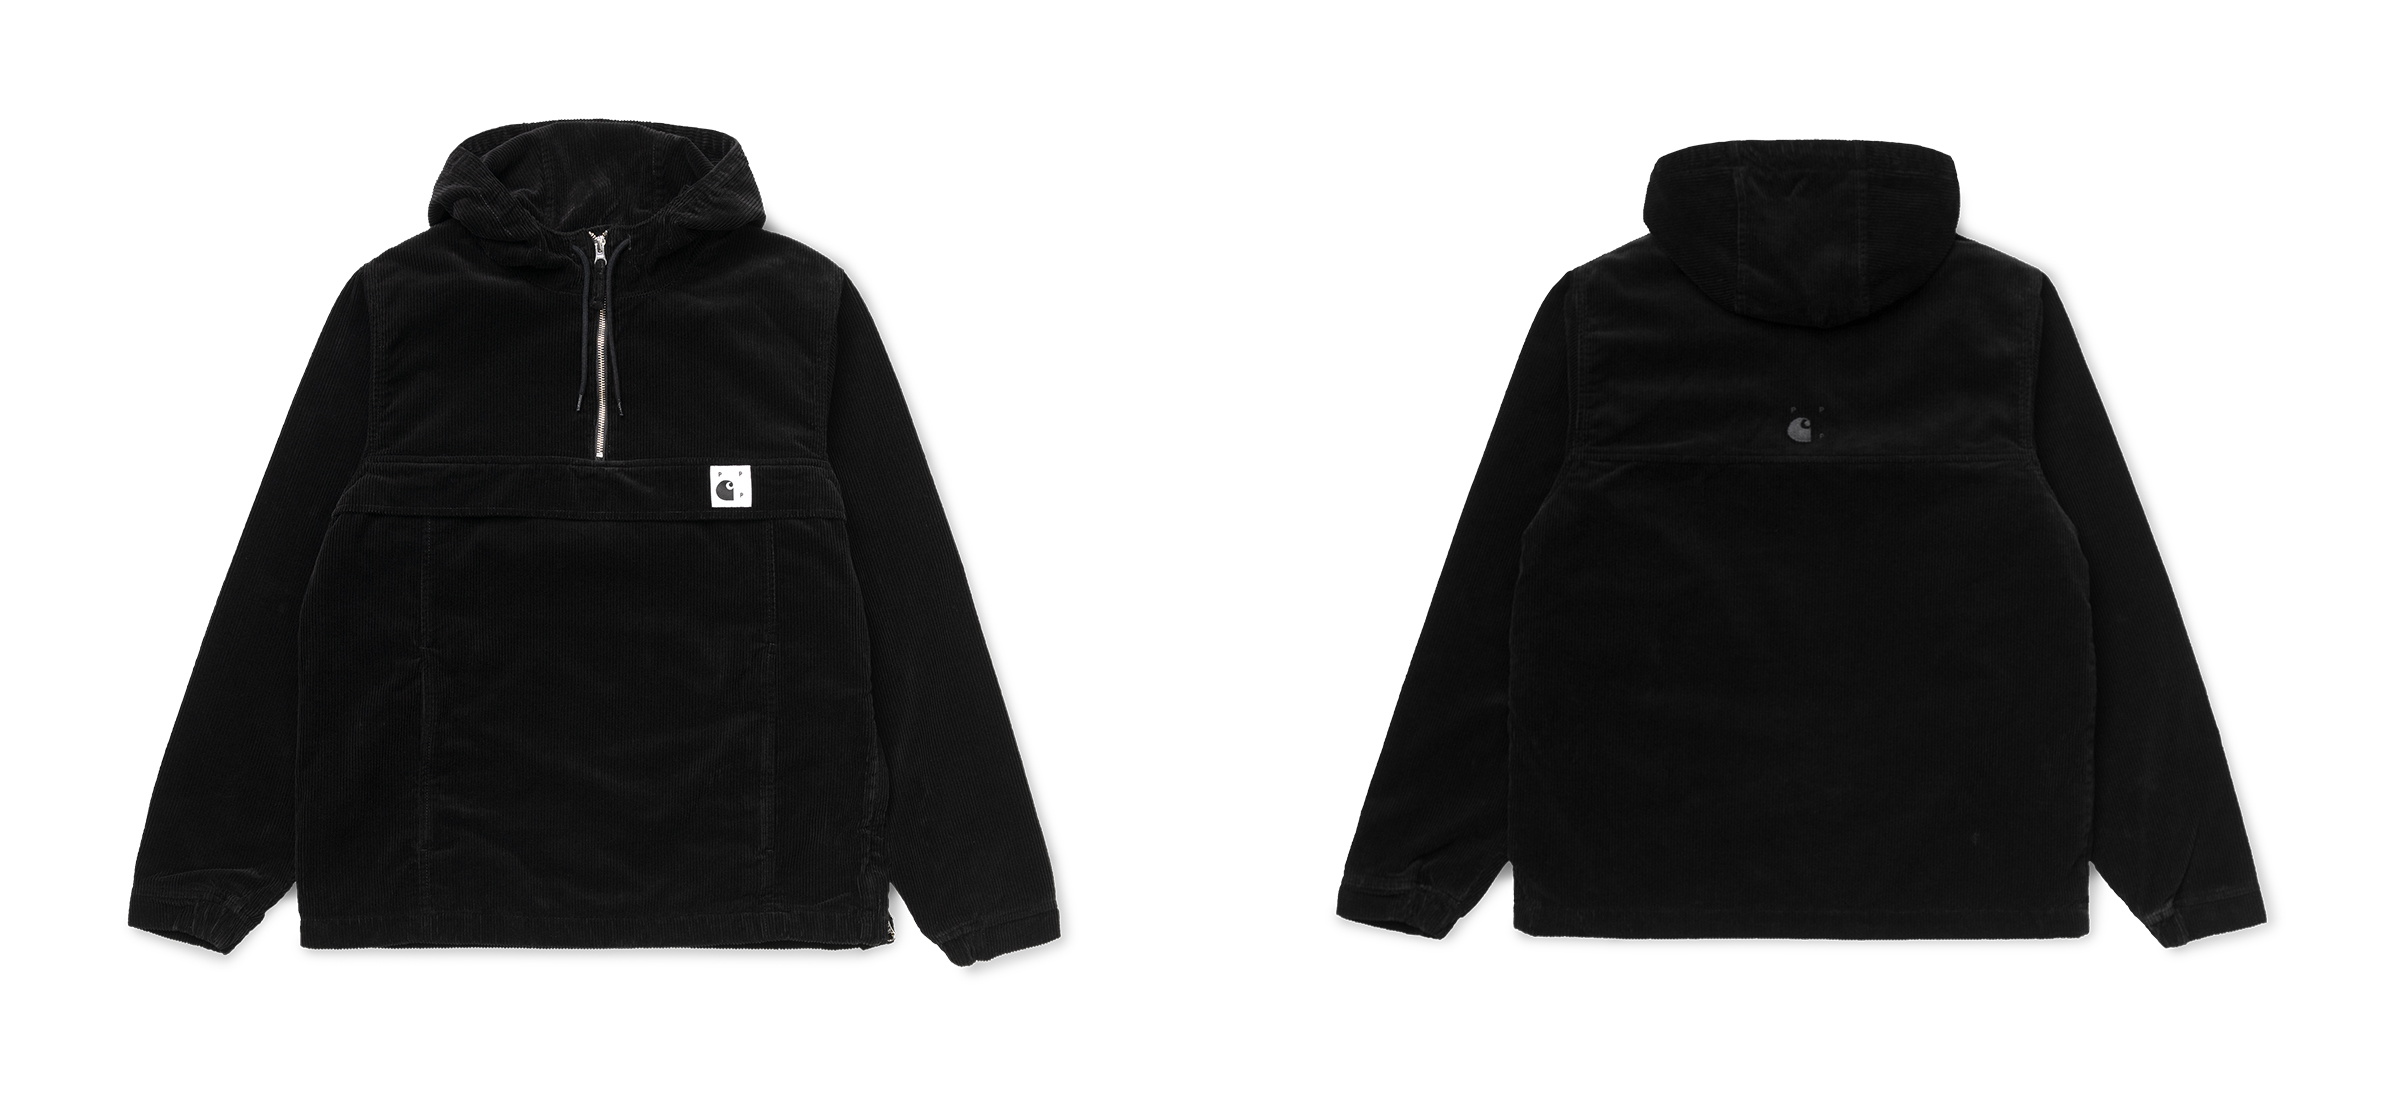 pop-trading-company-carhartt-wip-collab-product-2